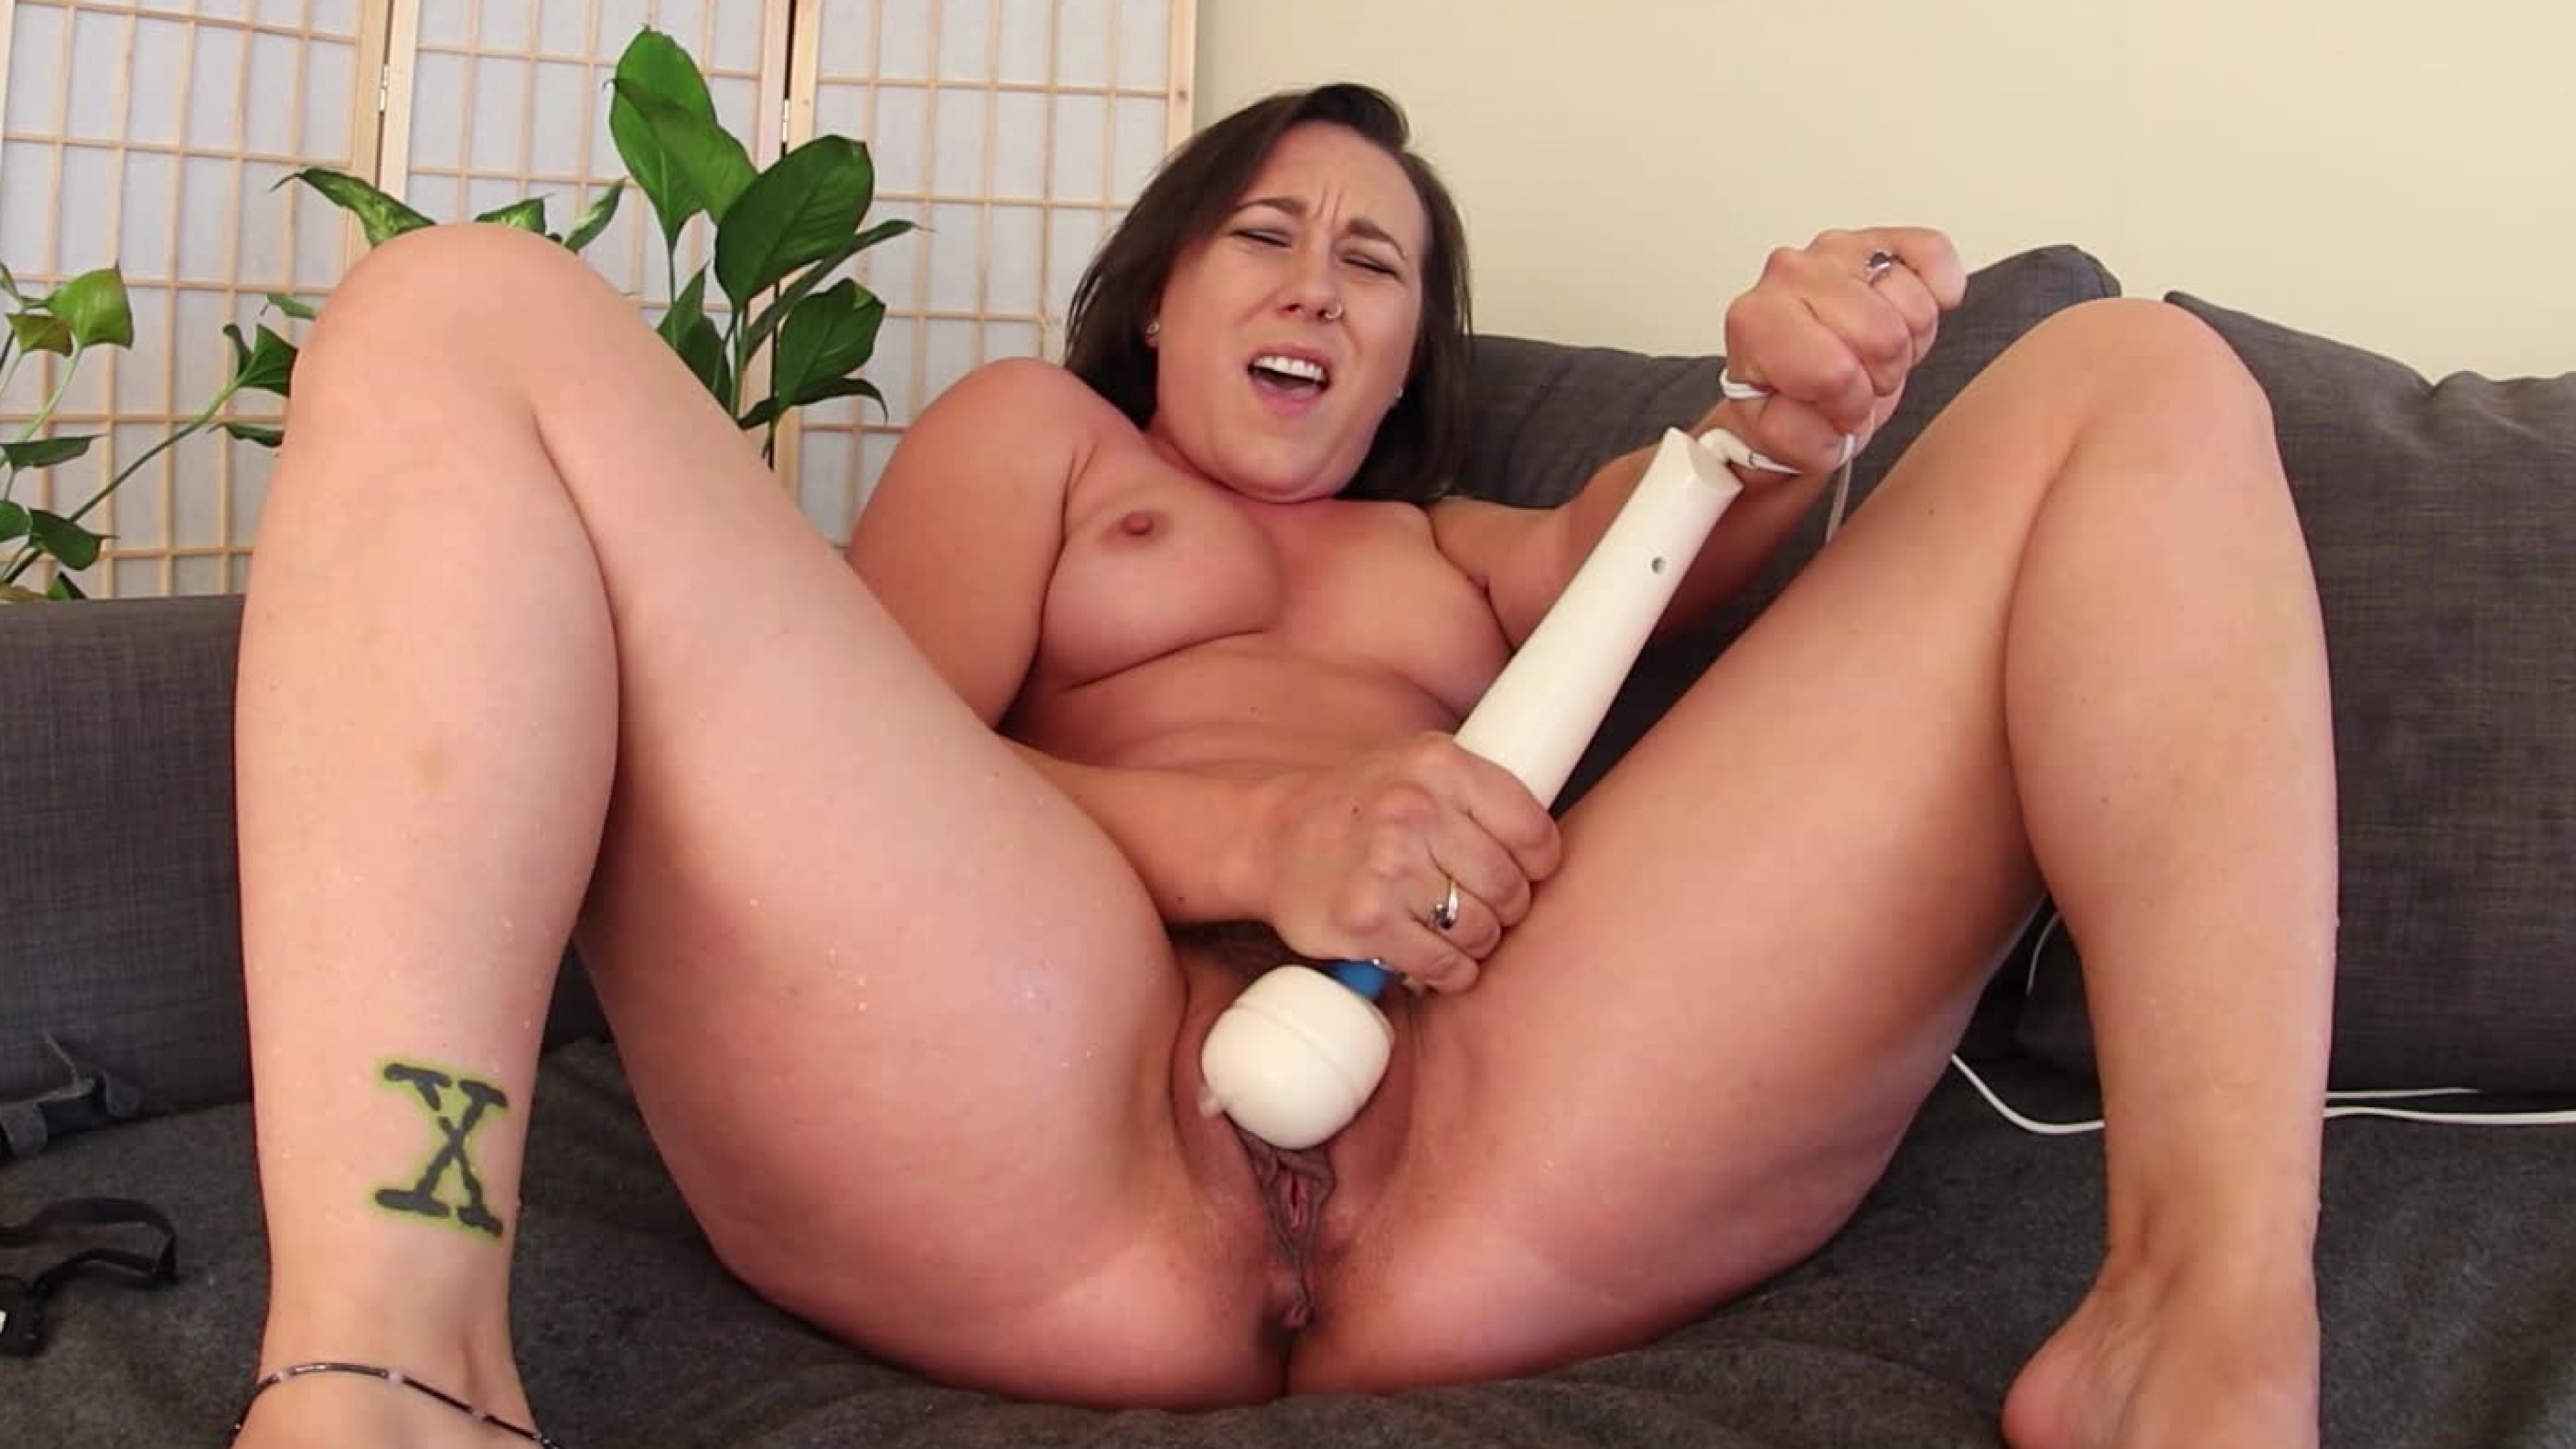 Sinn Sage's Screaming Squirting Orgasm